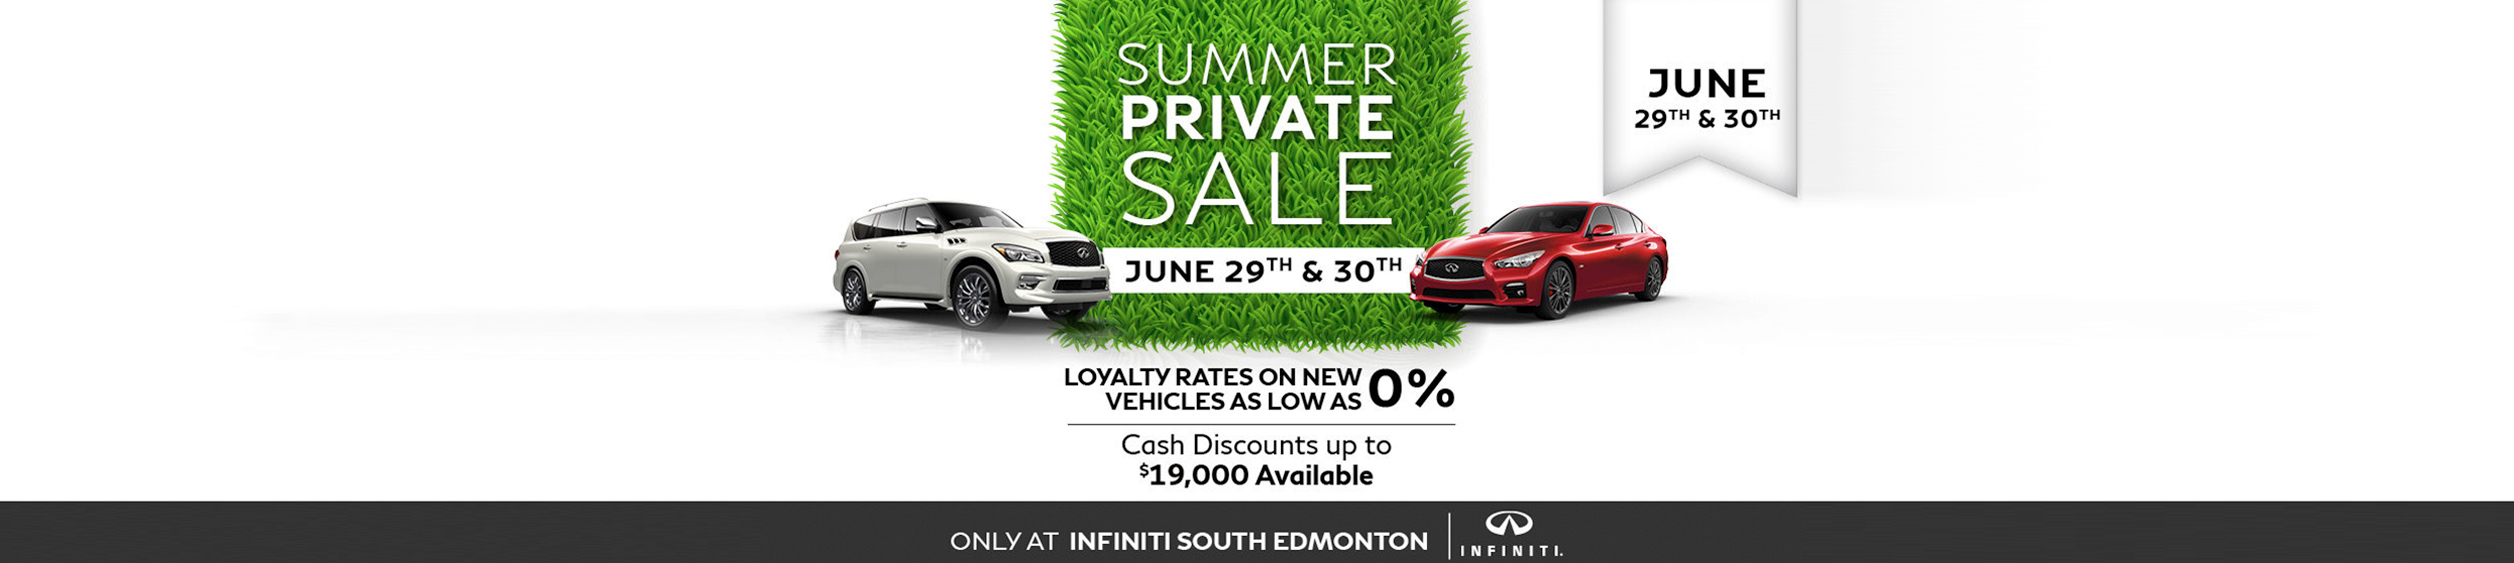 Infiniti Summer Private Sale